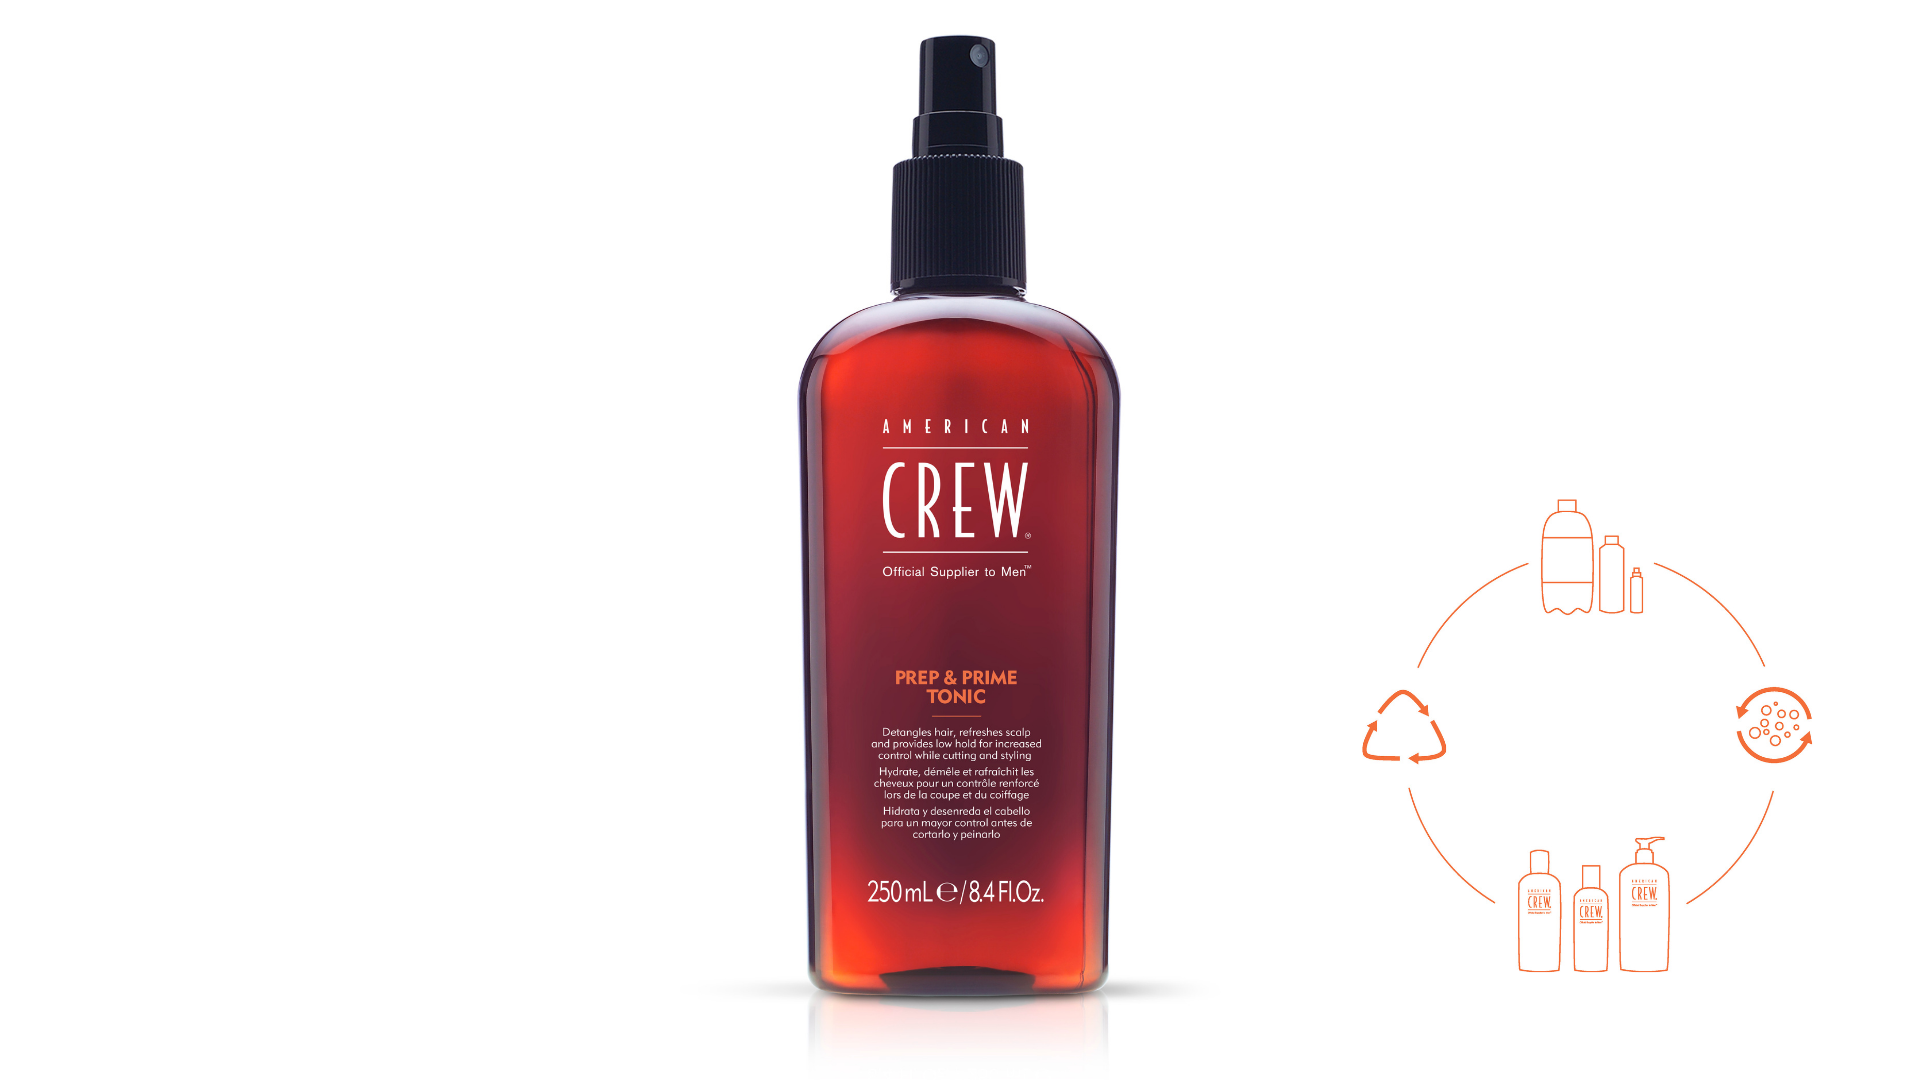 american crew prep and prime tonic sustainable